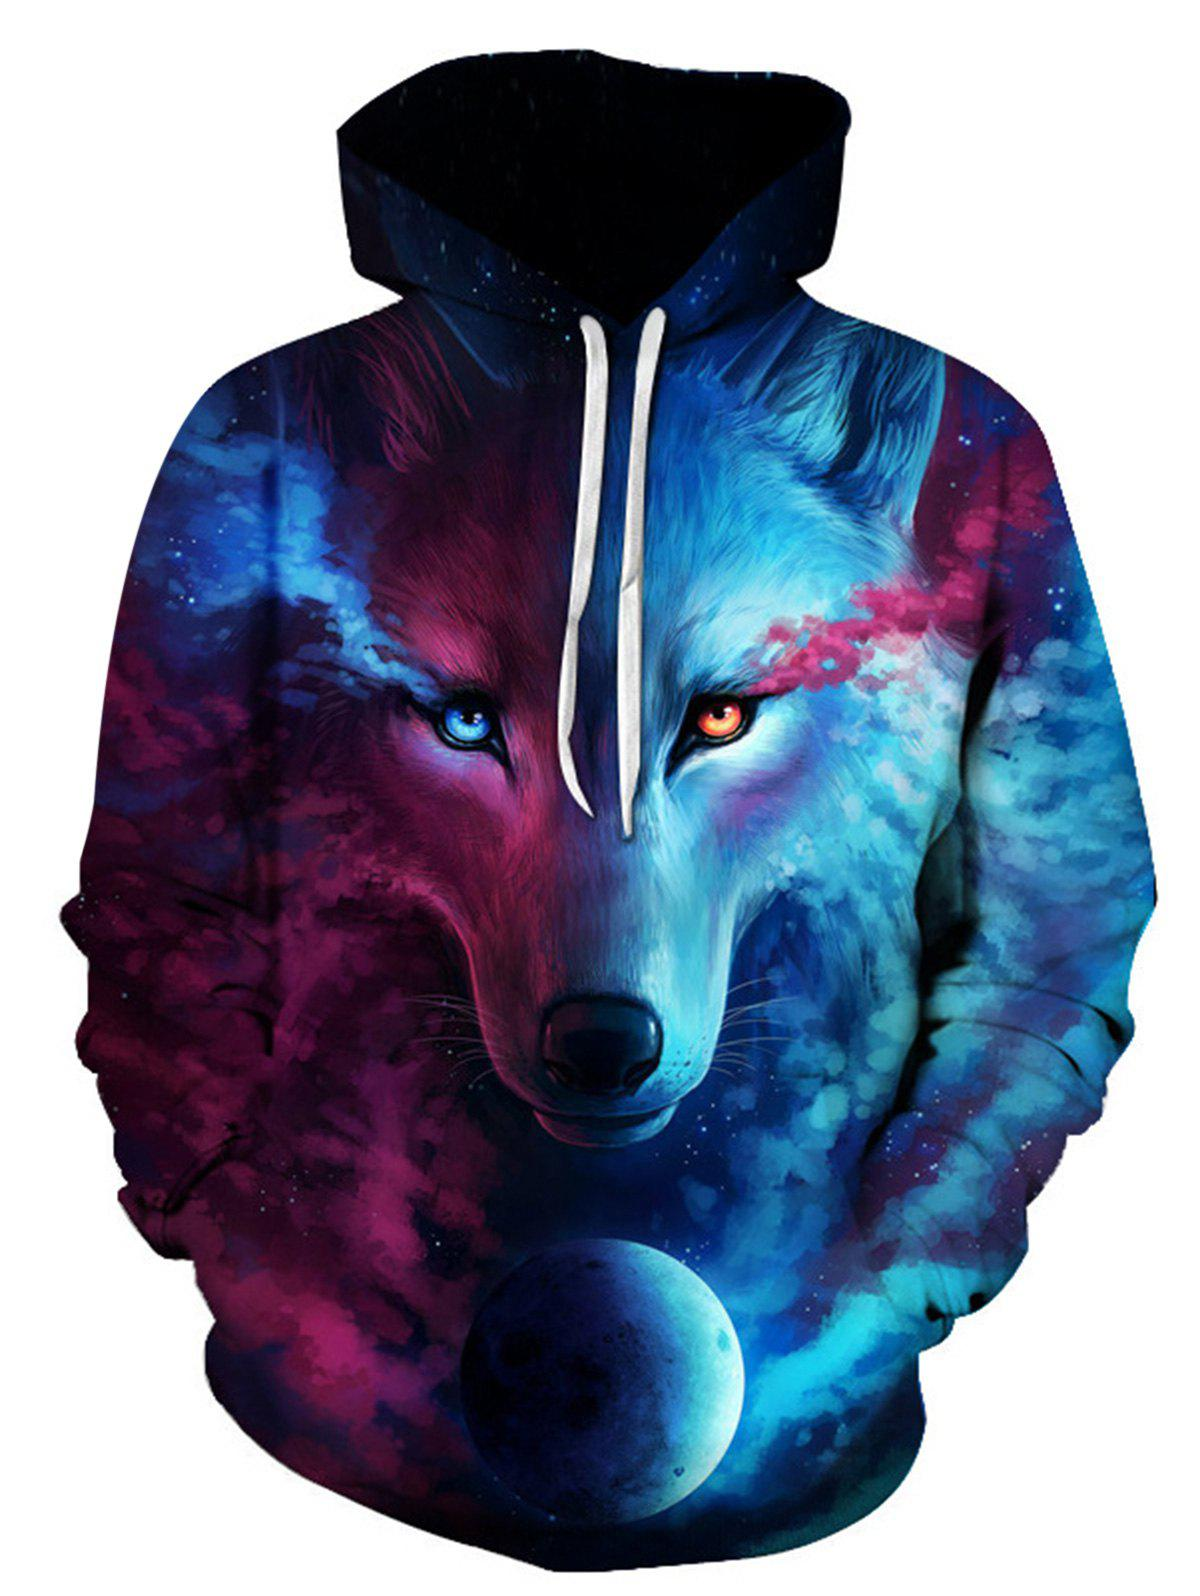 Hooded 3D Trippy Wolf Print Pullover HoodieMEN<br><br>Size: L; Color: COLORMIX; Material: Cotton,Polyester; Clothes Type: Hoodie; Shirt Length: Regular; Sleeve Length: Full; Style: Fashion; Patterns: 3D,Animal; Thickness: Regular; Occasion: Casual,Daily Use,Going Out; Weight: 0.4800kg; Package Contents: 1 x Hoodie;